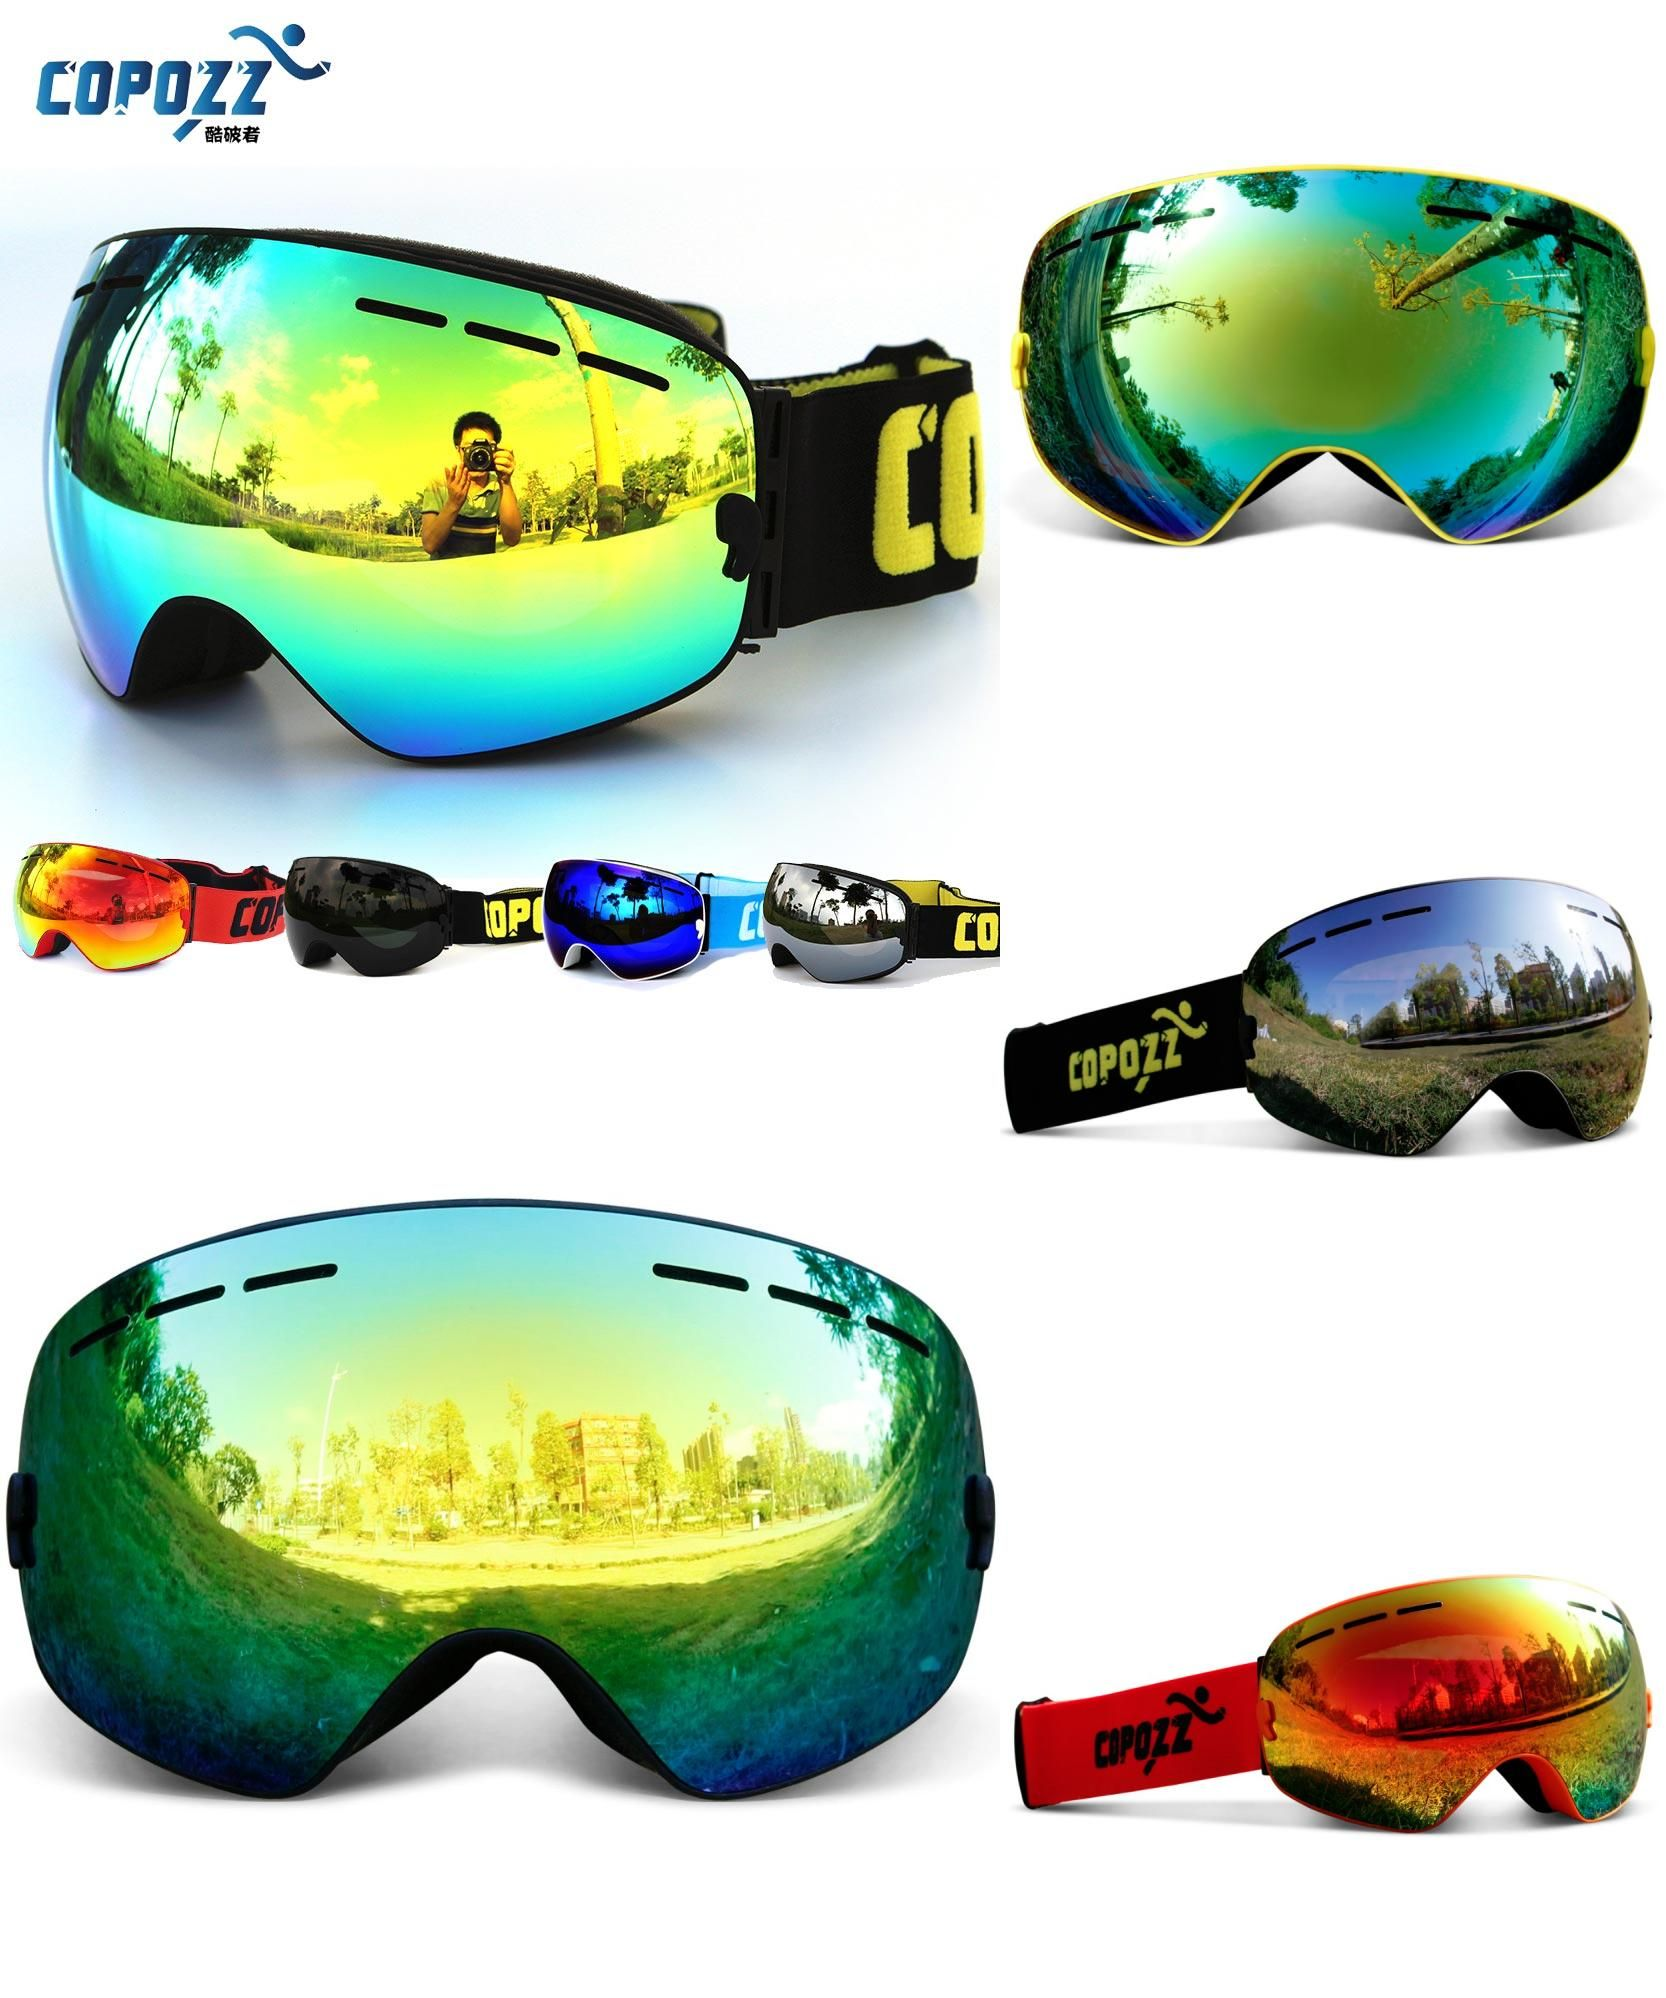 96597302b9dd  Visit to Buy  COPOZZ brand professional ski goggles double layers lens  anti-fog